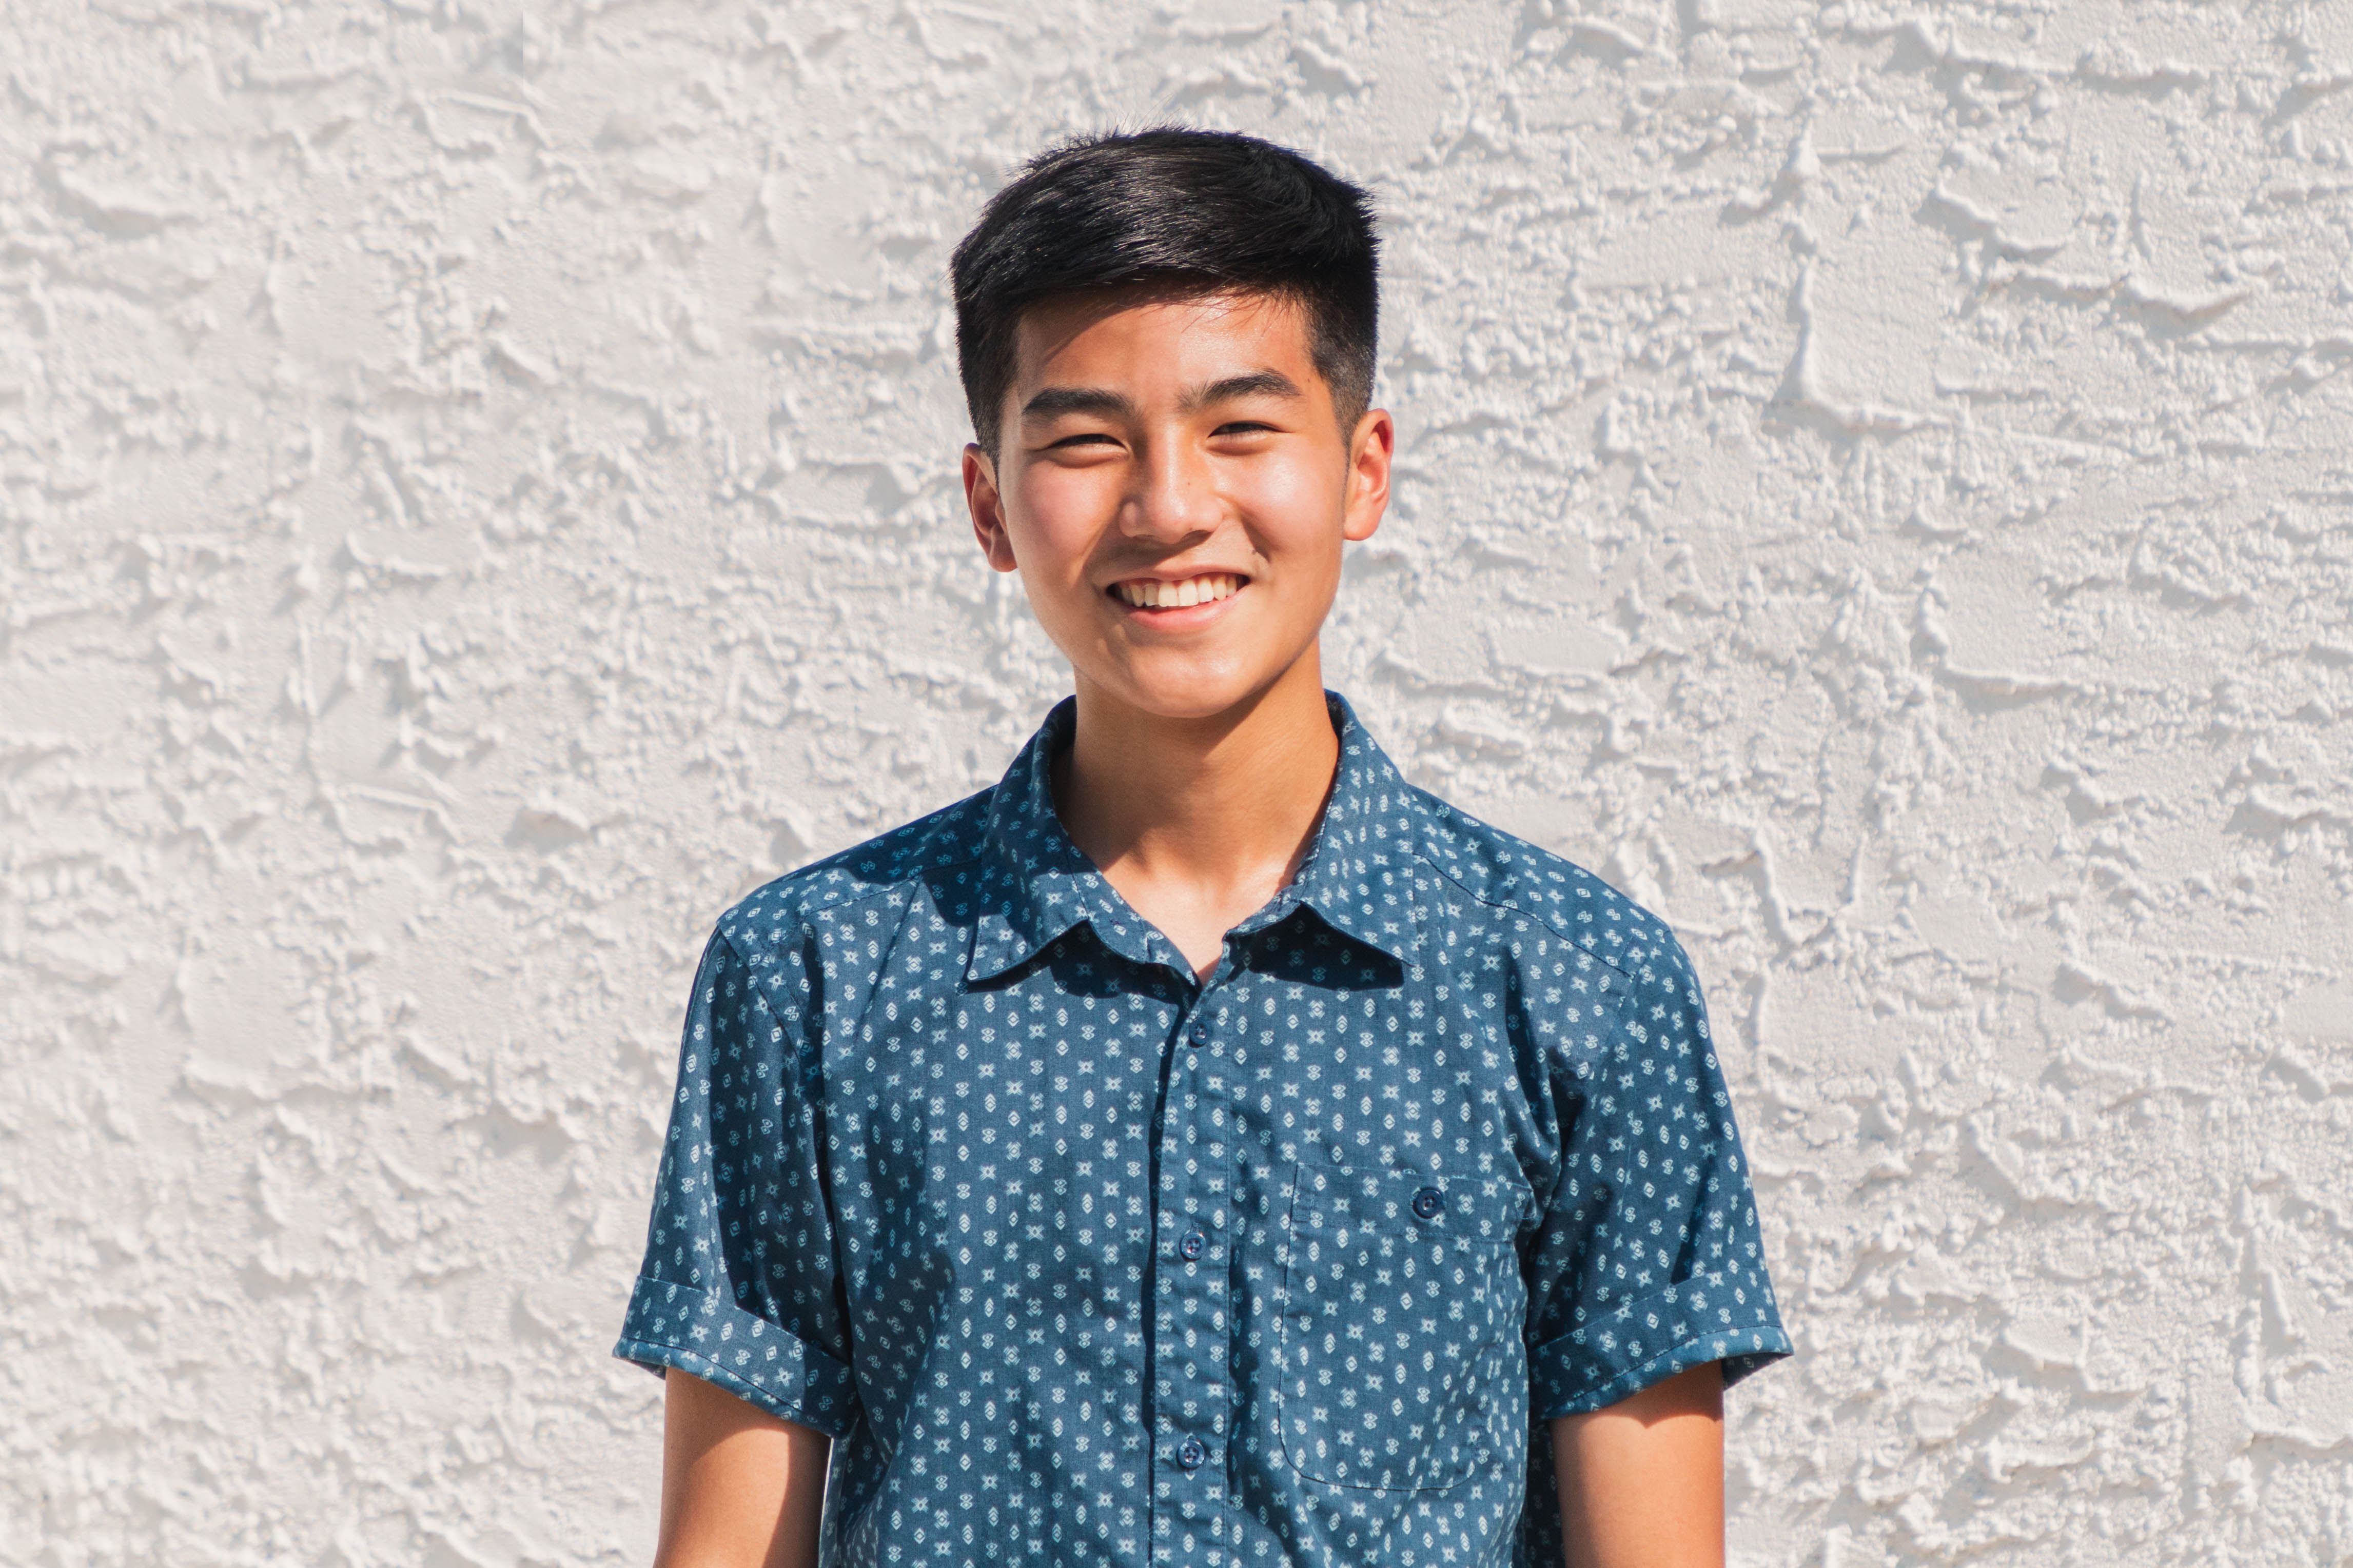 A profile photo of Hanson Leung who is a student at Wissahickon High School